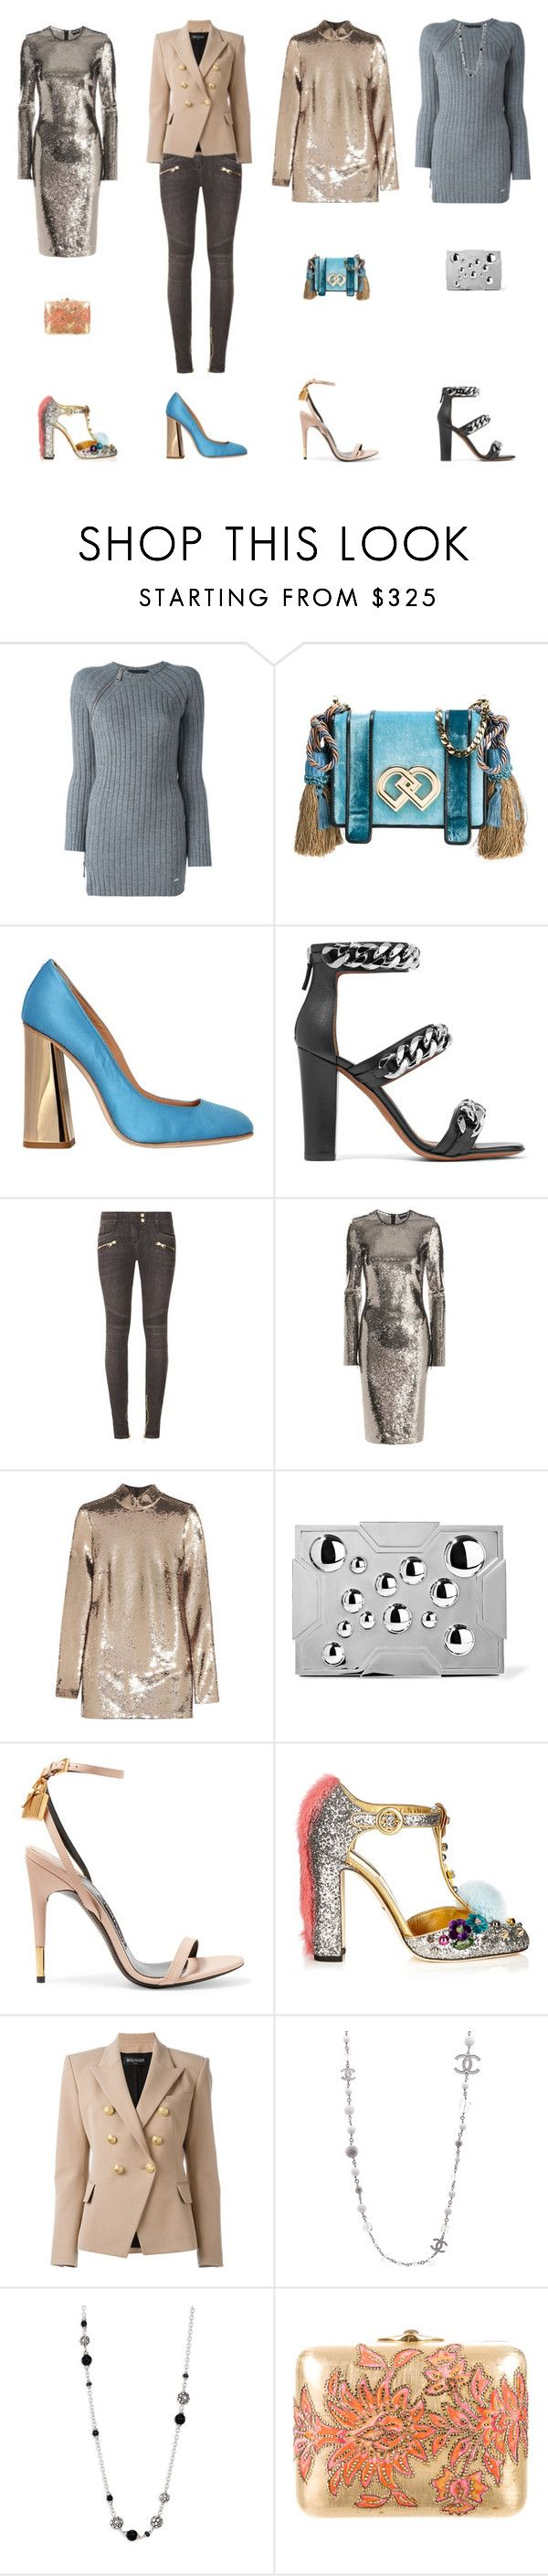 """""""real one"""" by queenbrown ❤ liked on Polyvore featuring Dsquared2, Givenchy, Balmain, Tom Ford, Lee Savage, Dolce&Gabbana, Chanel, John Hardy and Judith Leiber"""